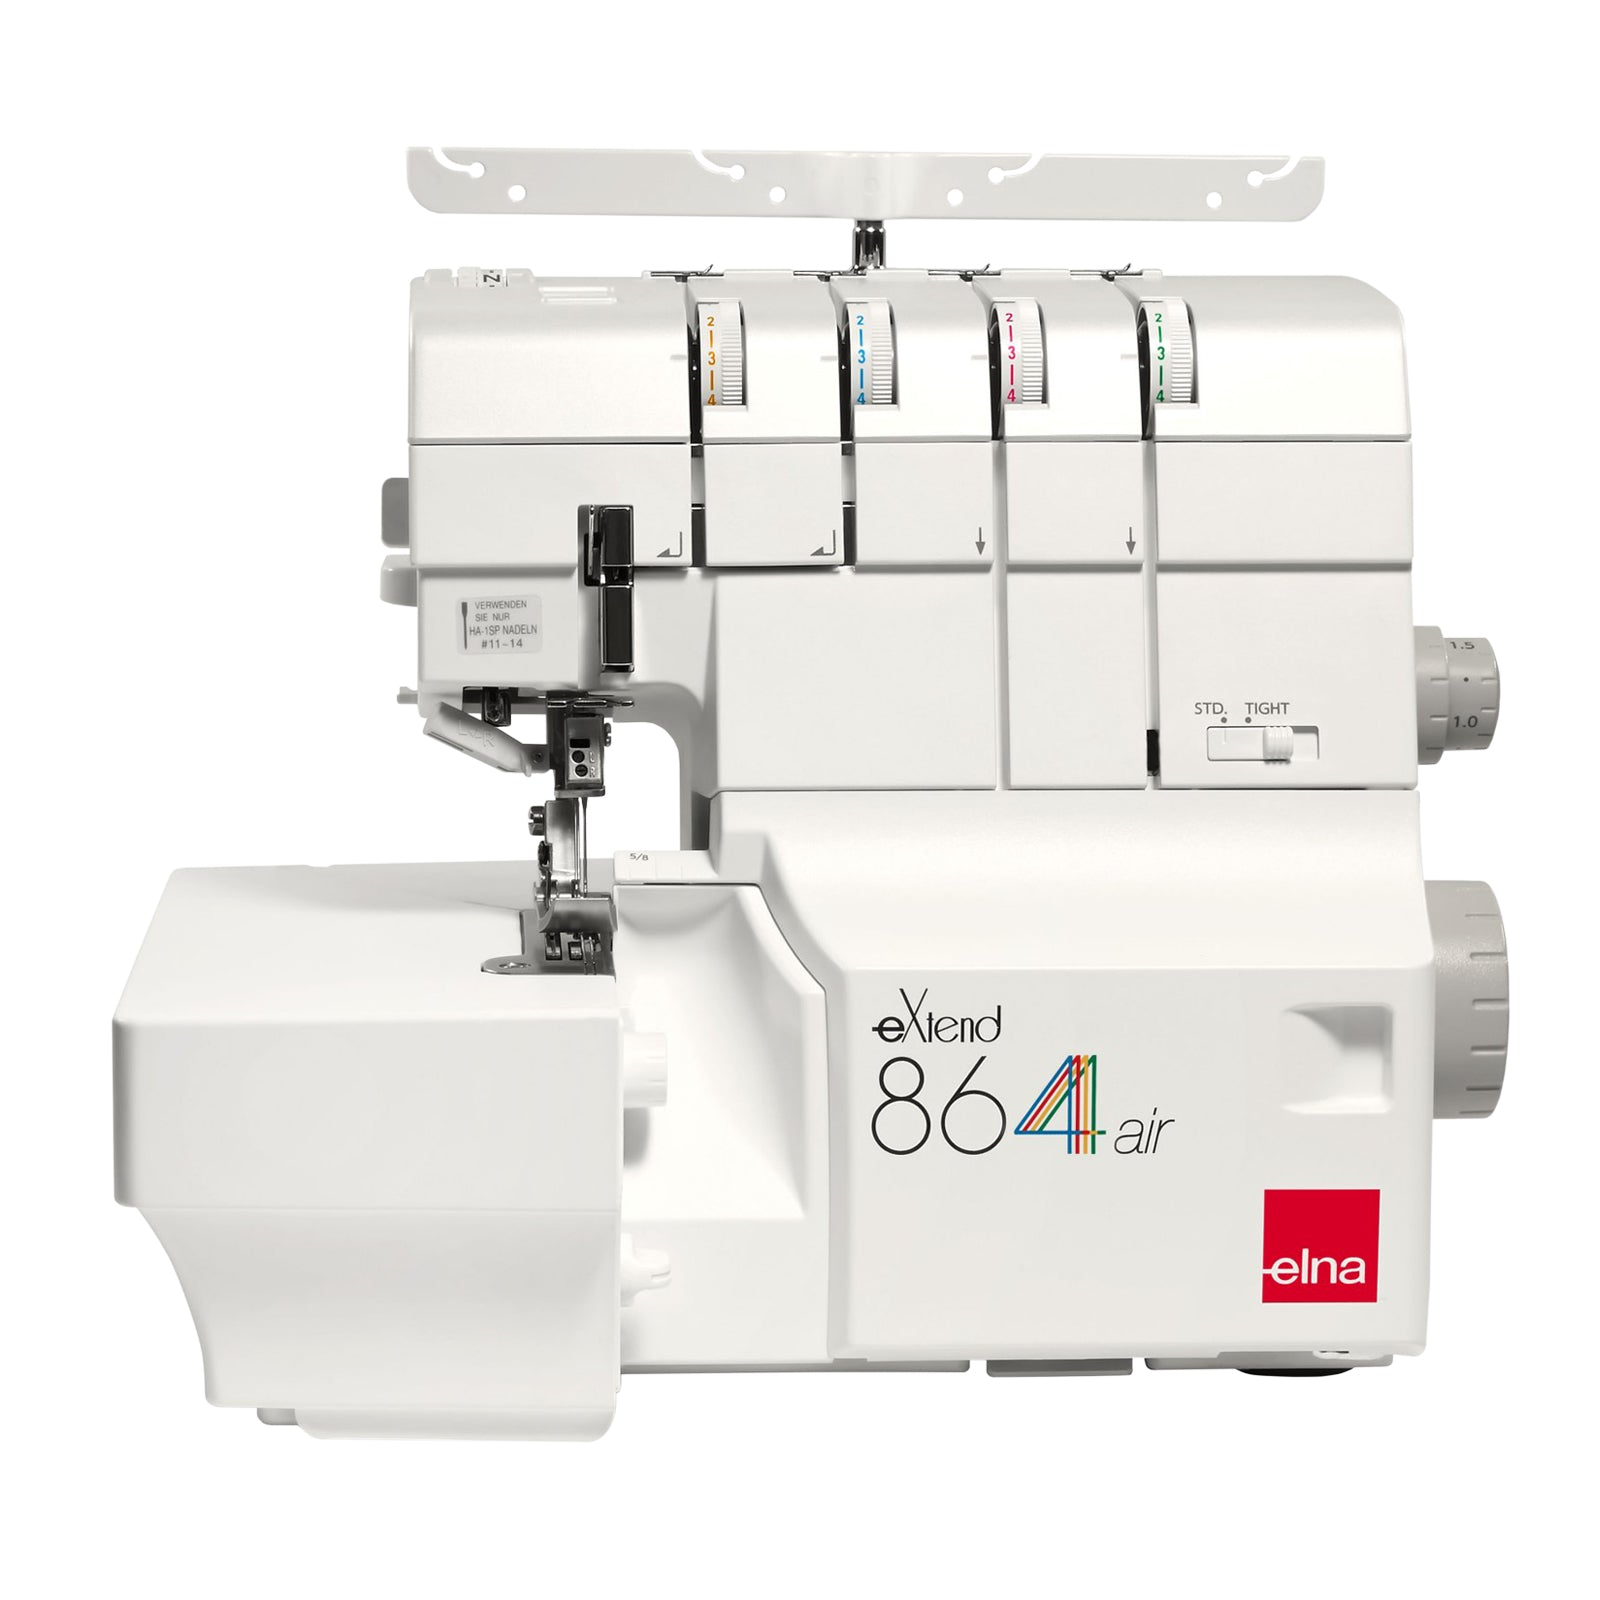 Elna eXtend 864 Air Serger